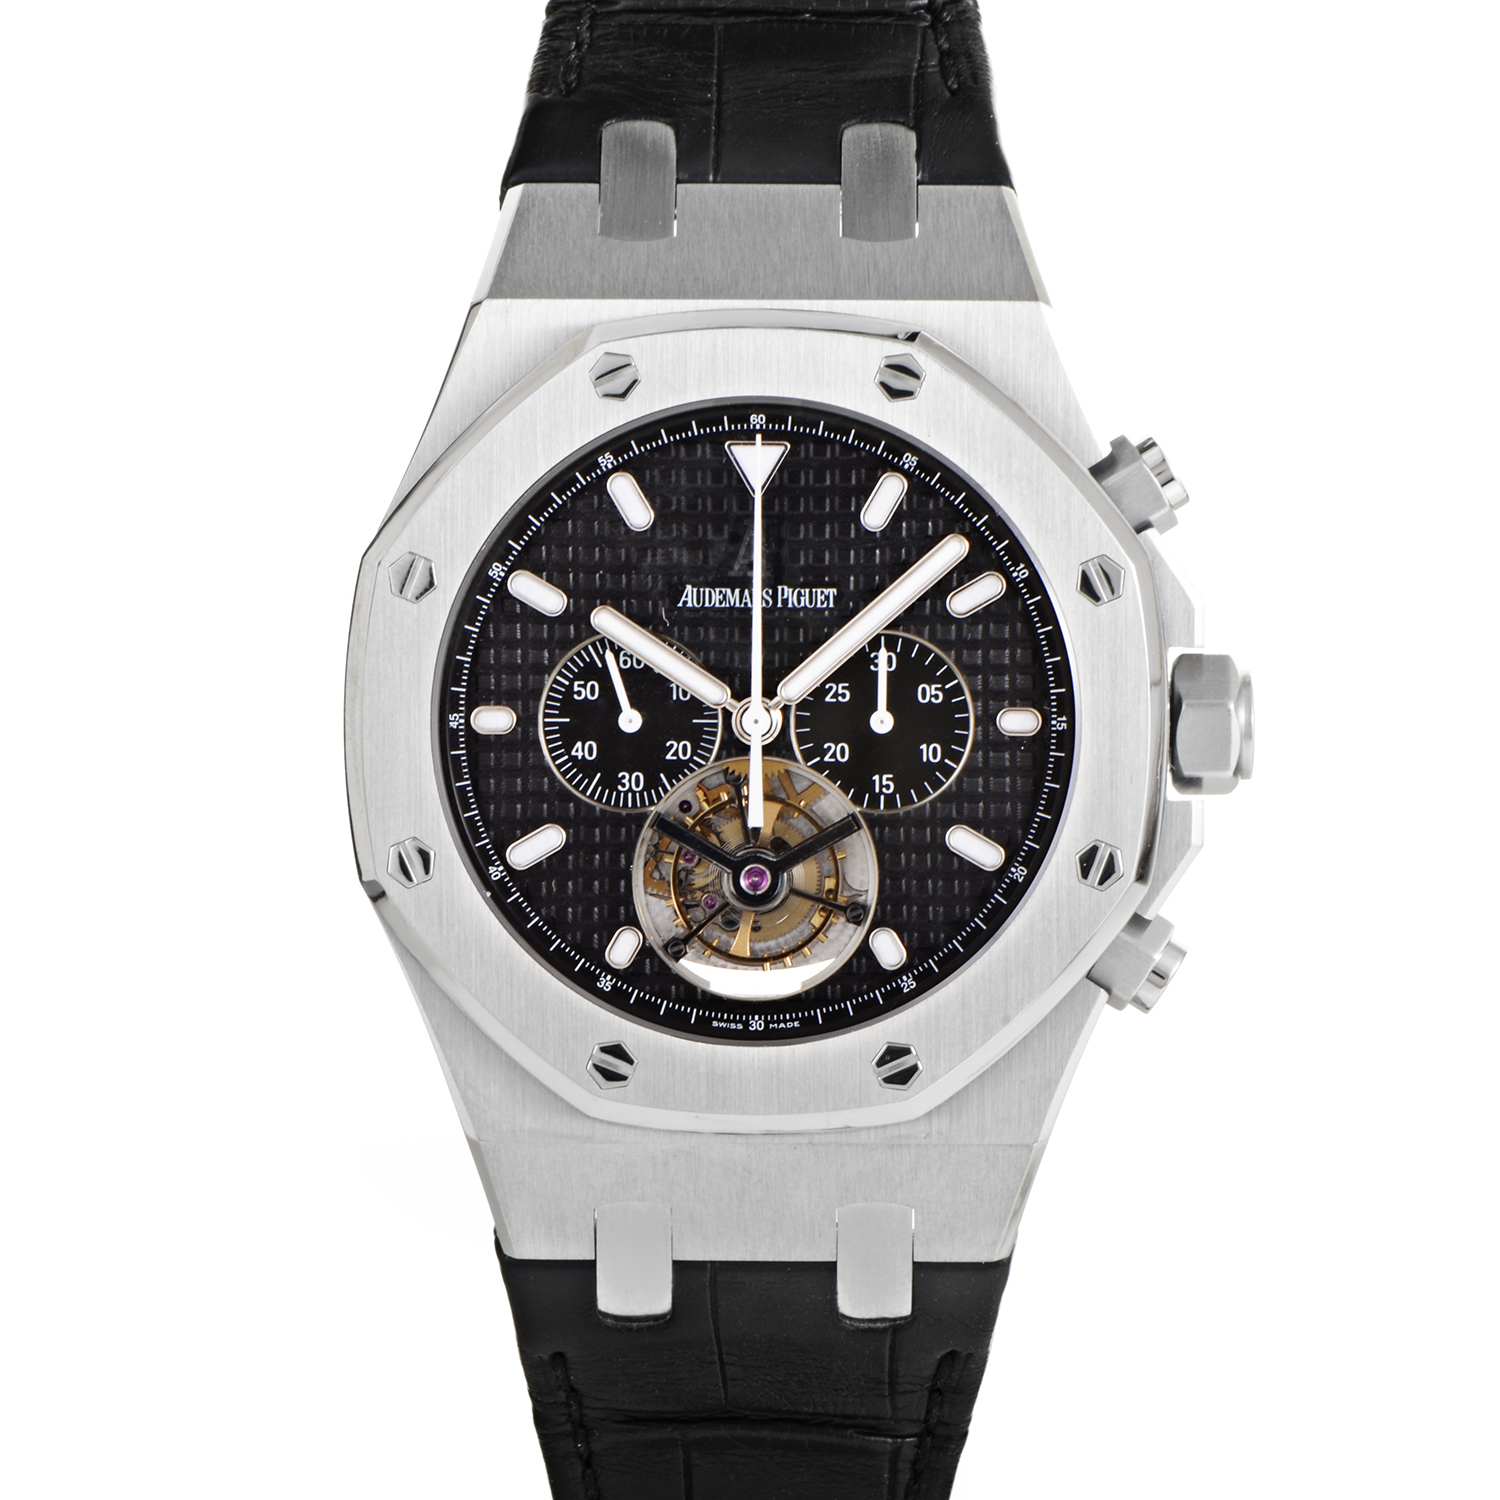 Royal Oak Tourbillon Chronograph 25977ST.OO.D002CR.01